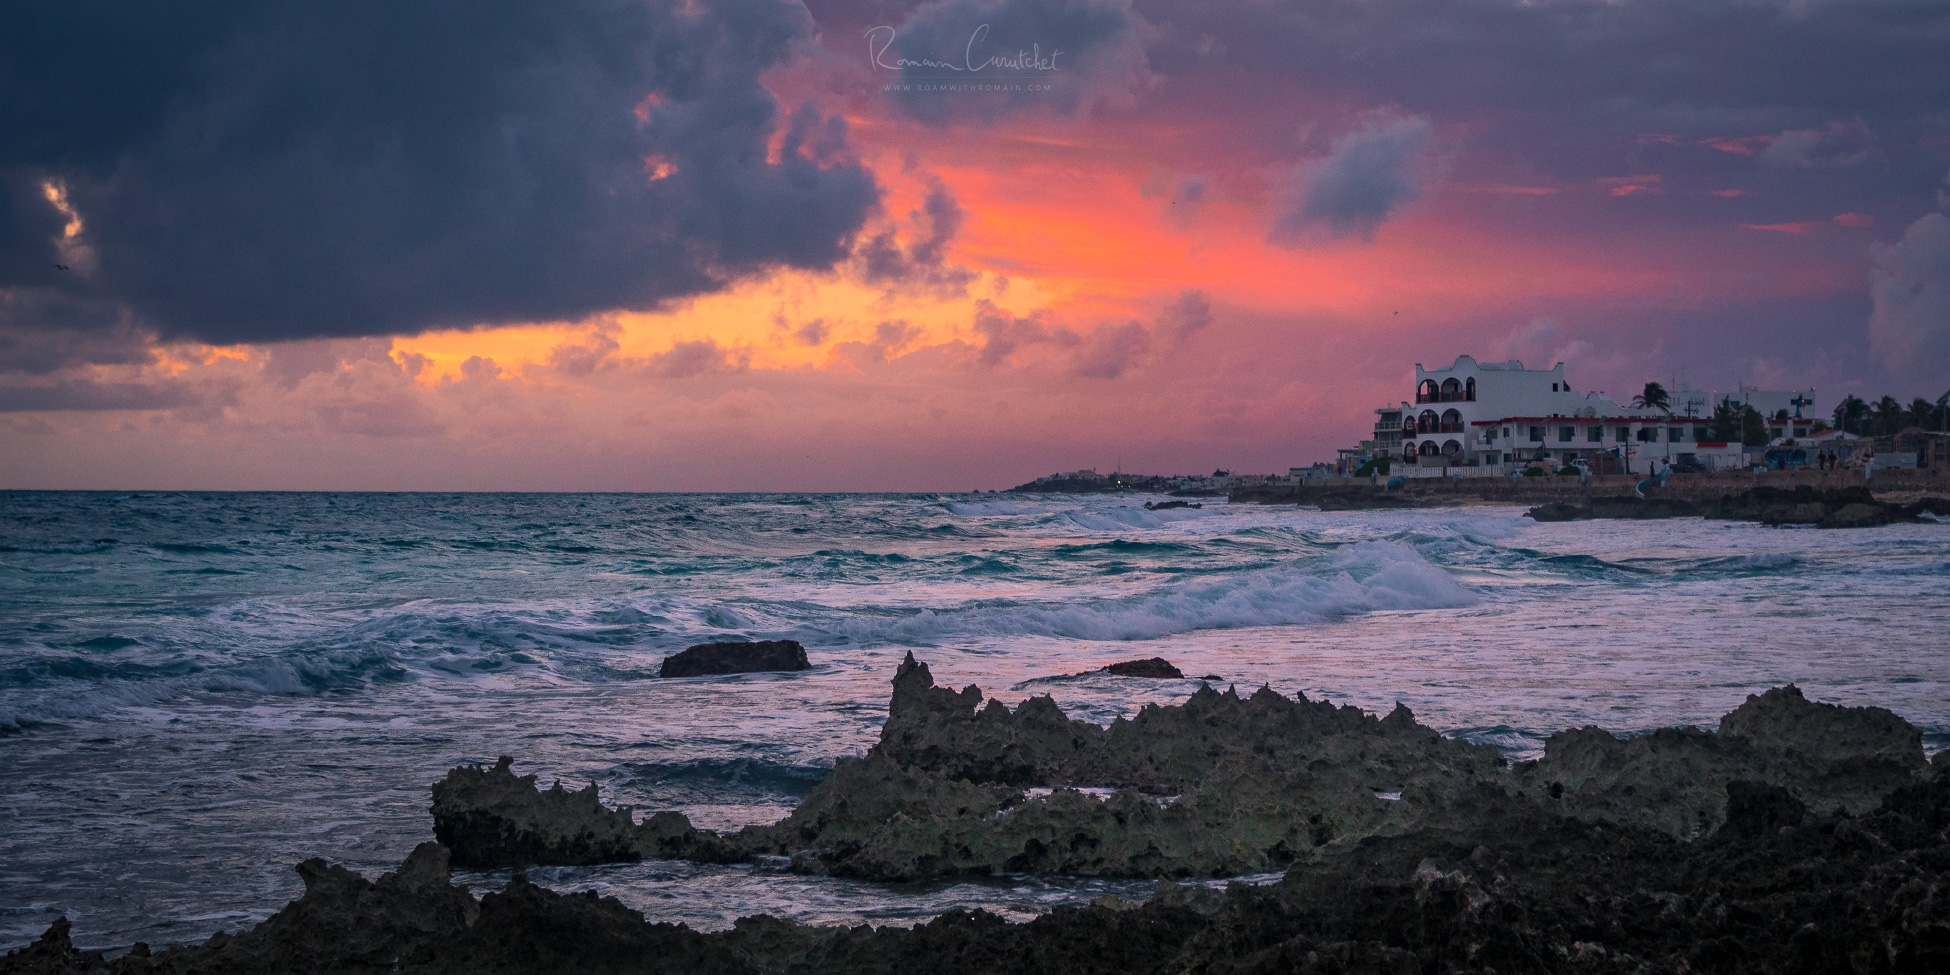 Stormy sunrise in Isla Mujeres, the easternmost point in Mexico